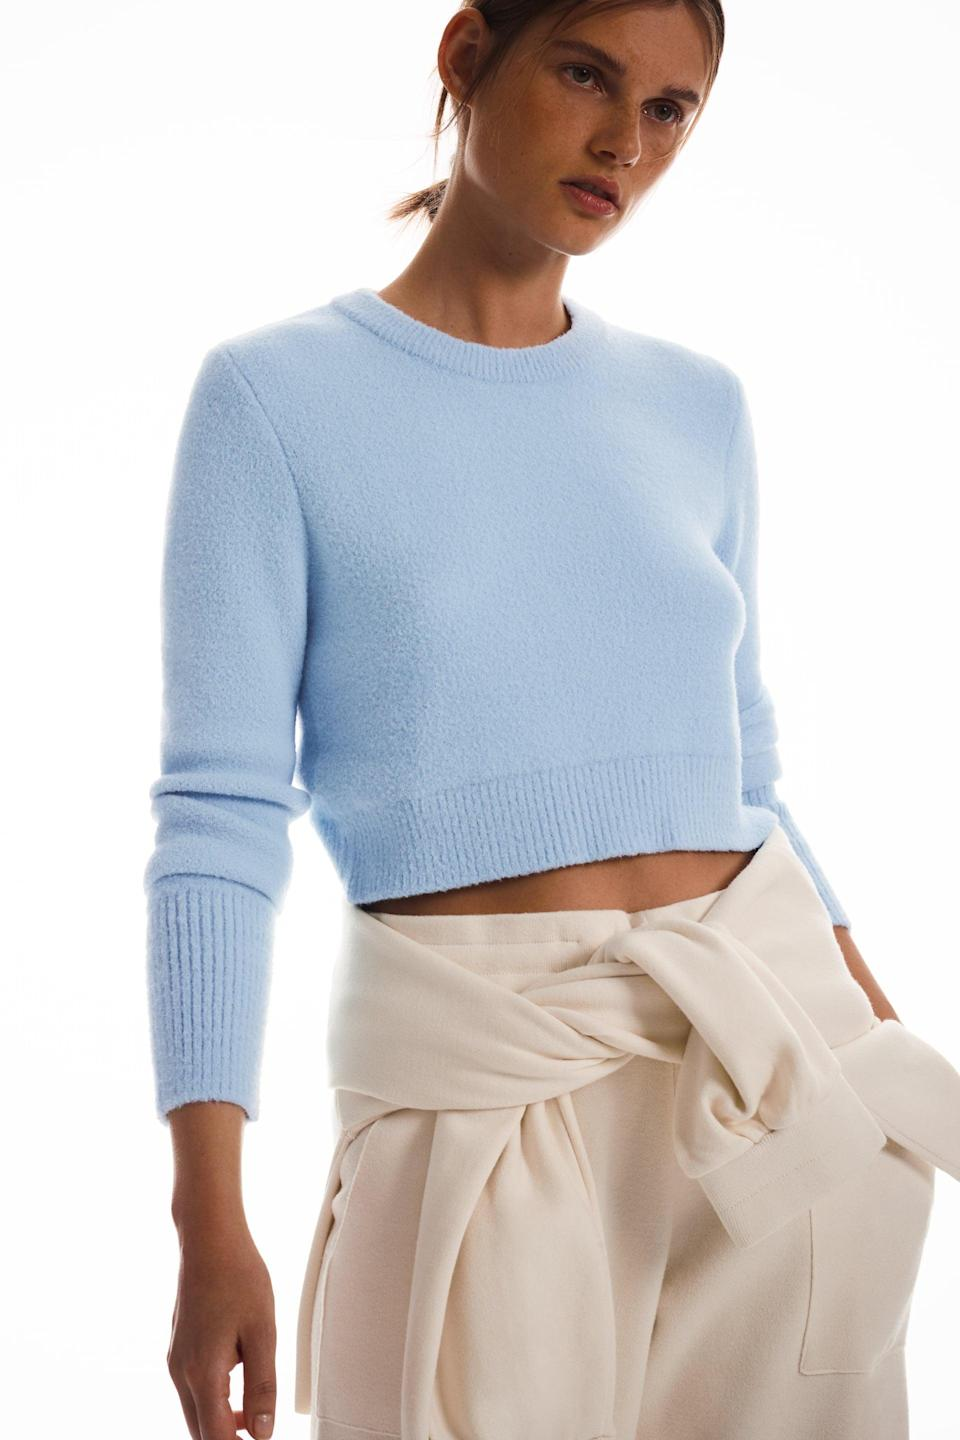 <p>This <span>Zara Soft Feel Cropped Sweater</span> ($40) is so soft and cozy. It feels like a warm hug, and once you try it on, you'll never want to take it off.</p>